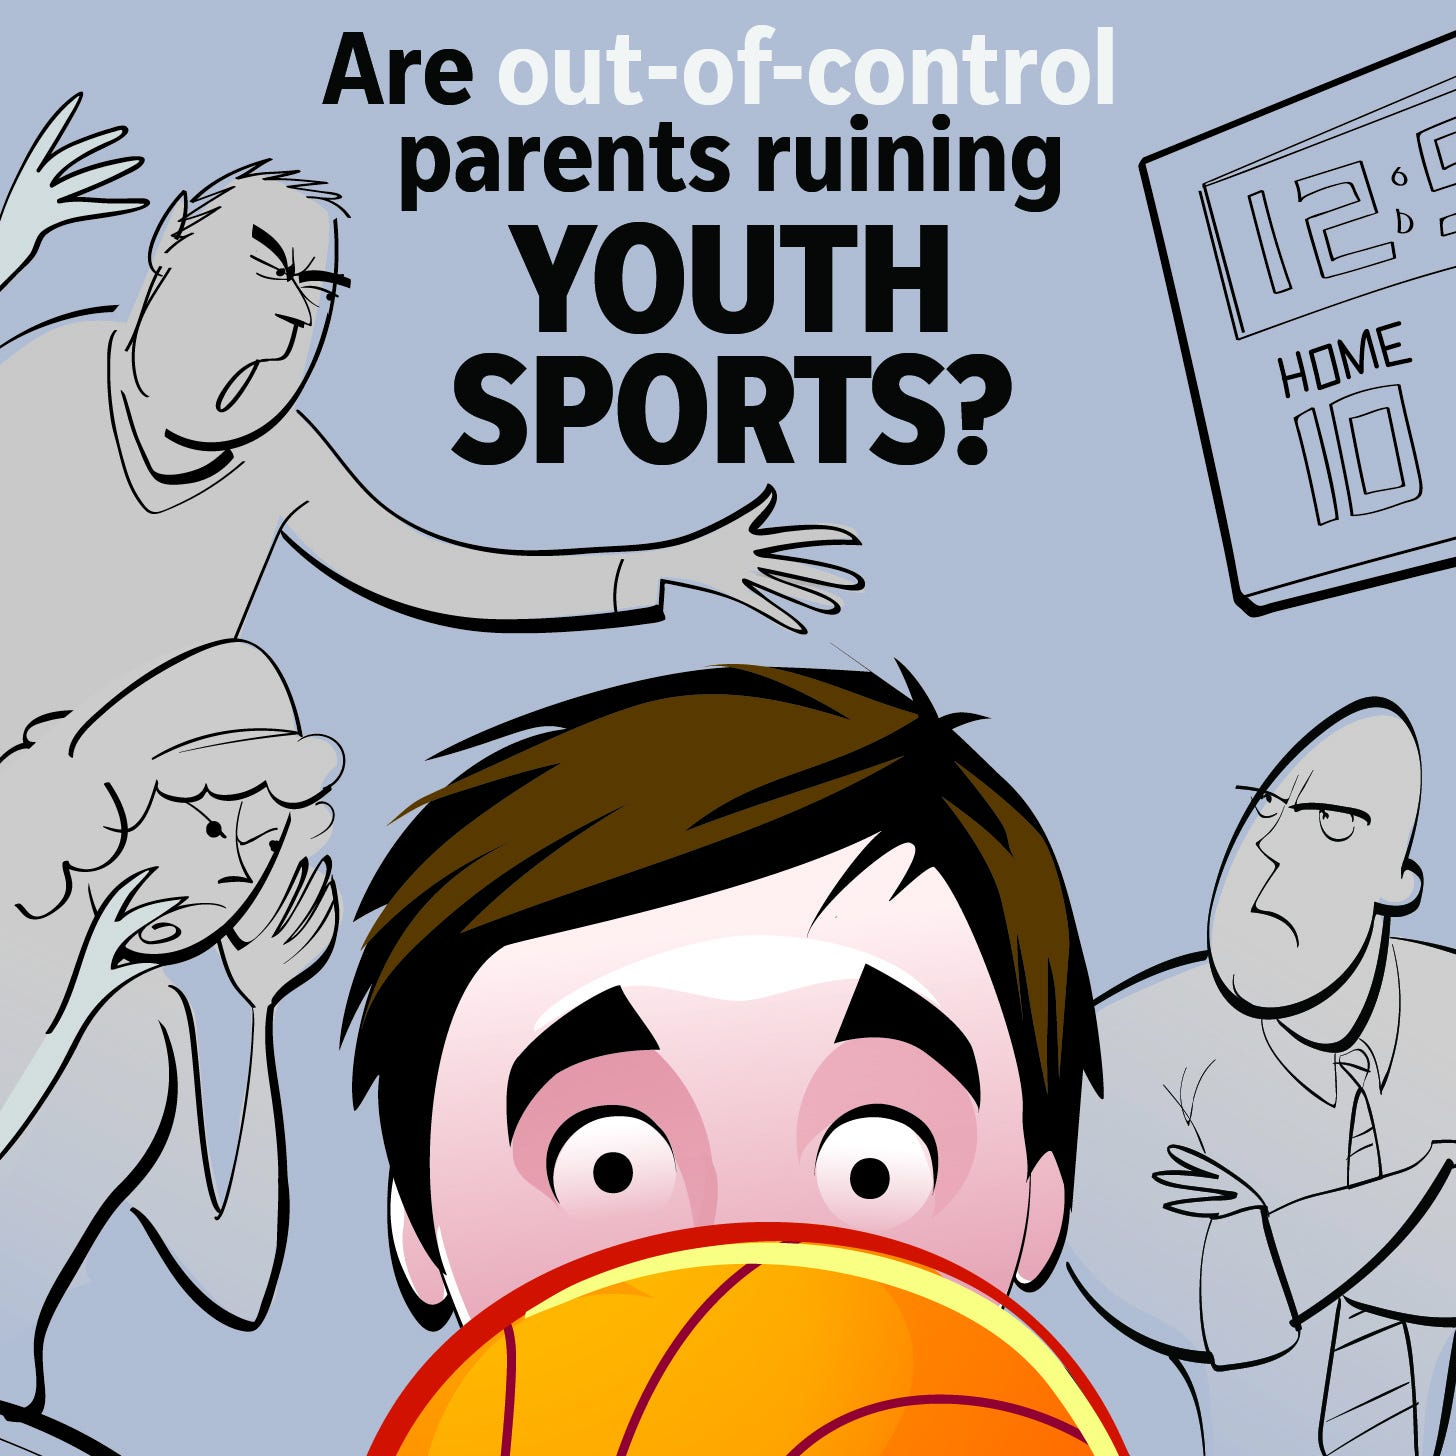 Overbearing parents can take the fun out of sports for their kids